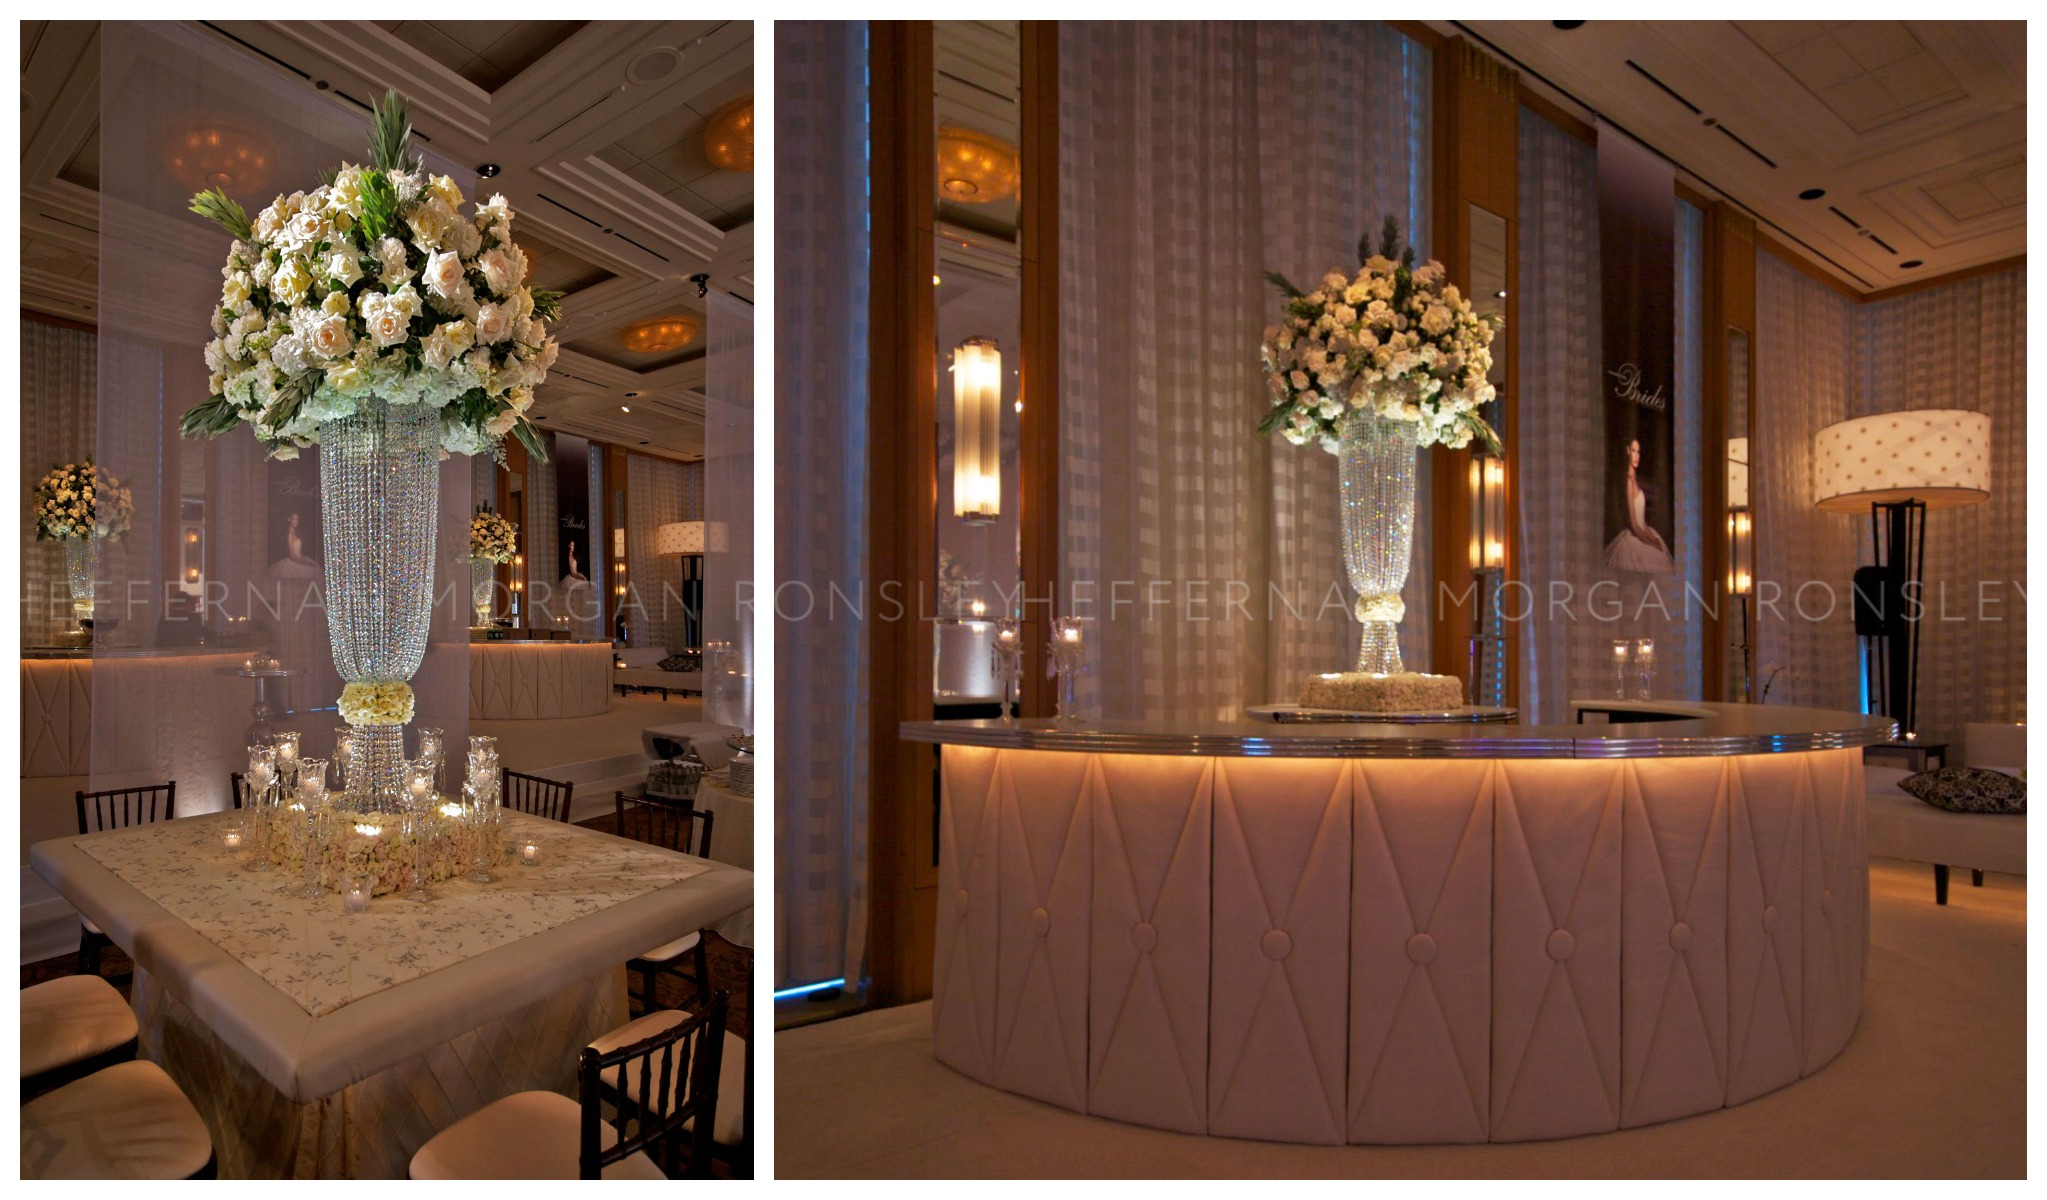 Elegant floral and a custom bar, also from 2007's event at the Peninsula.